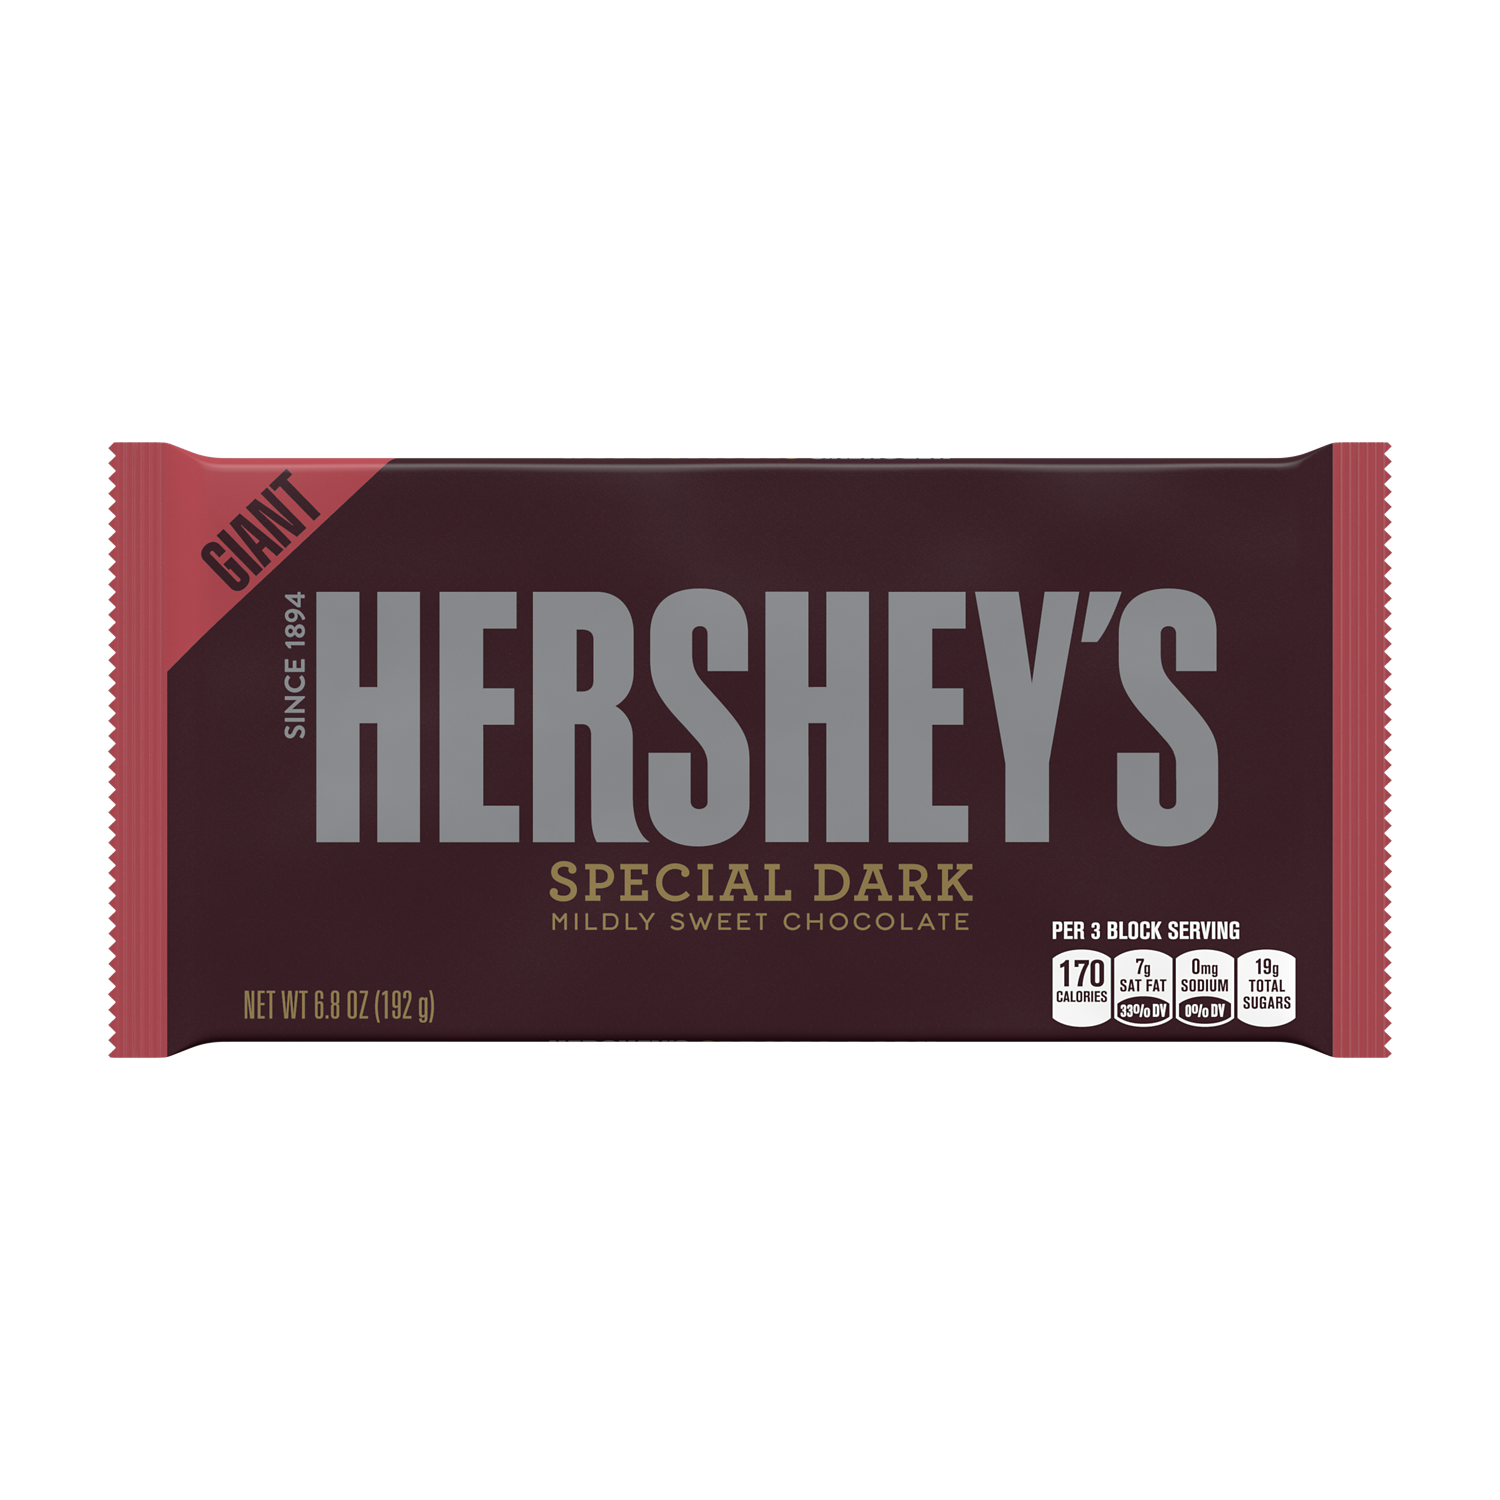 HERSHEY'S SPECIAL DARK Mildly Sweet Chocolate Giant Candy Bar, 6.8 oz - Front of Package